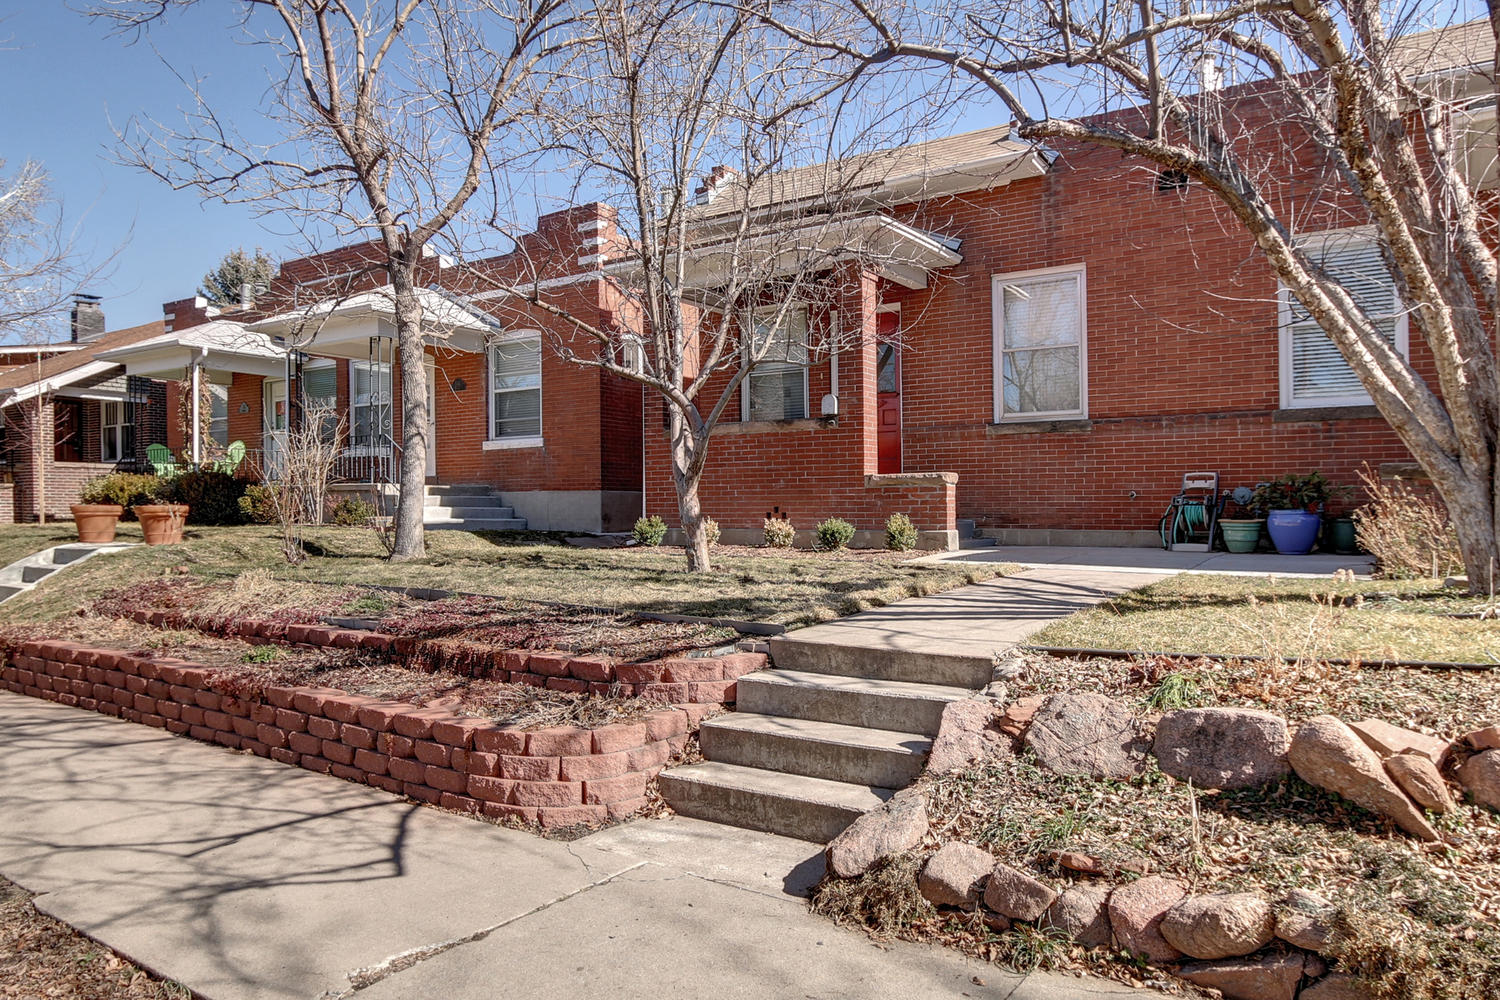 1-528-marion-st-denver-co-80218-large-001-1-hotshotpros-801e-1500x1000-72dpi